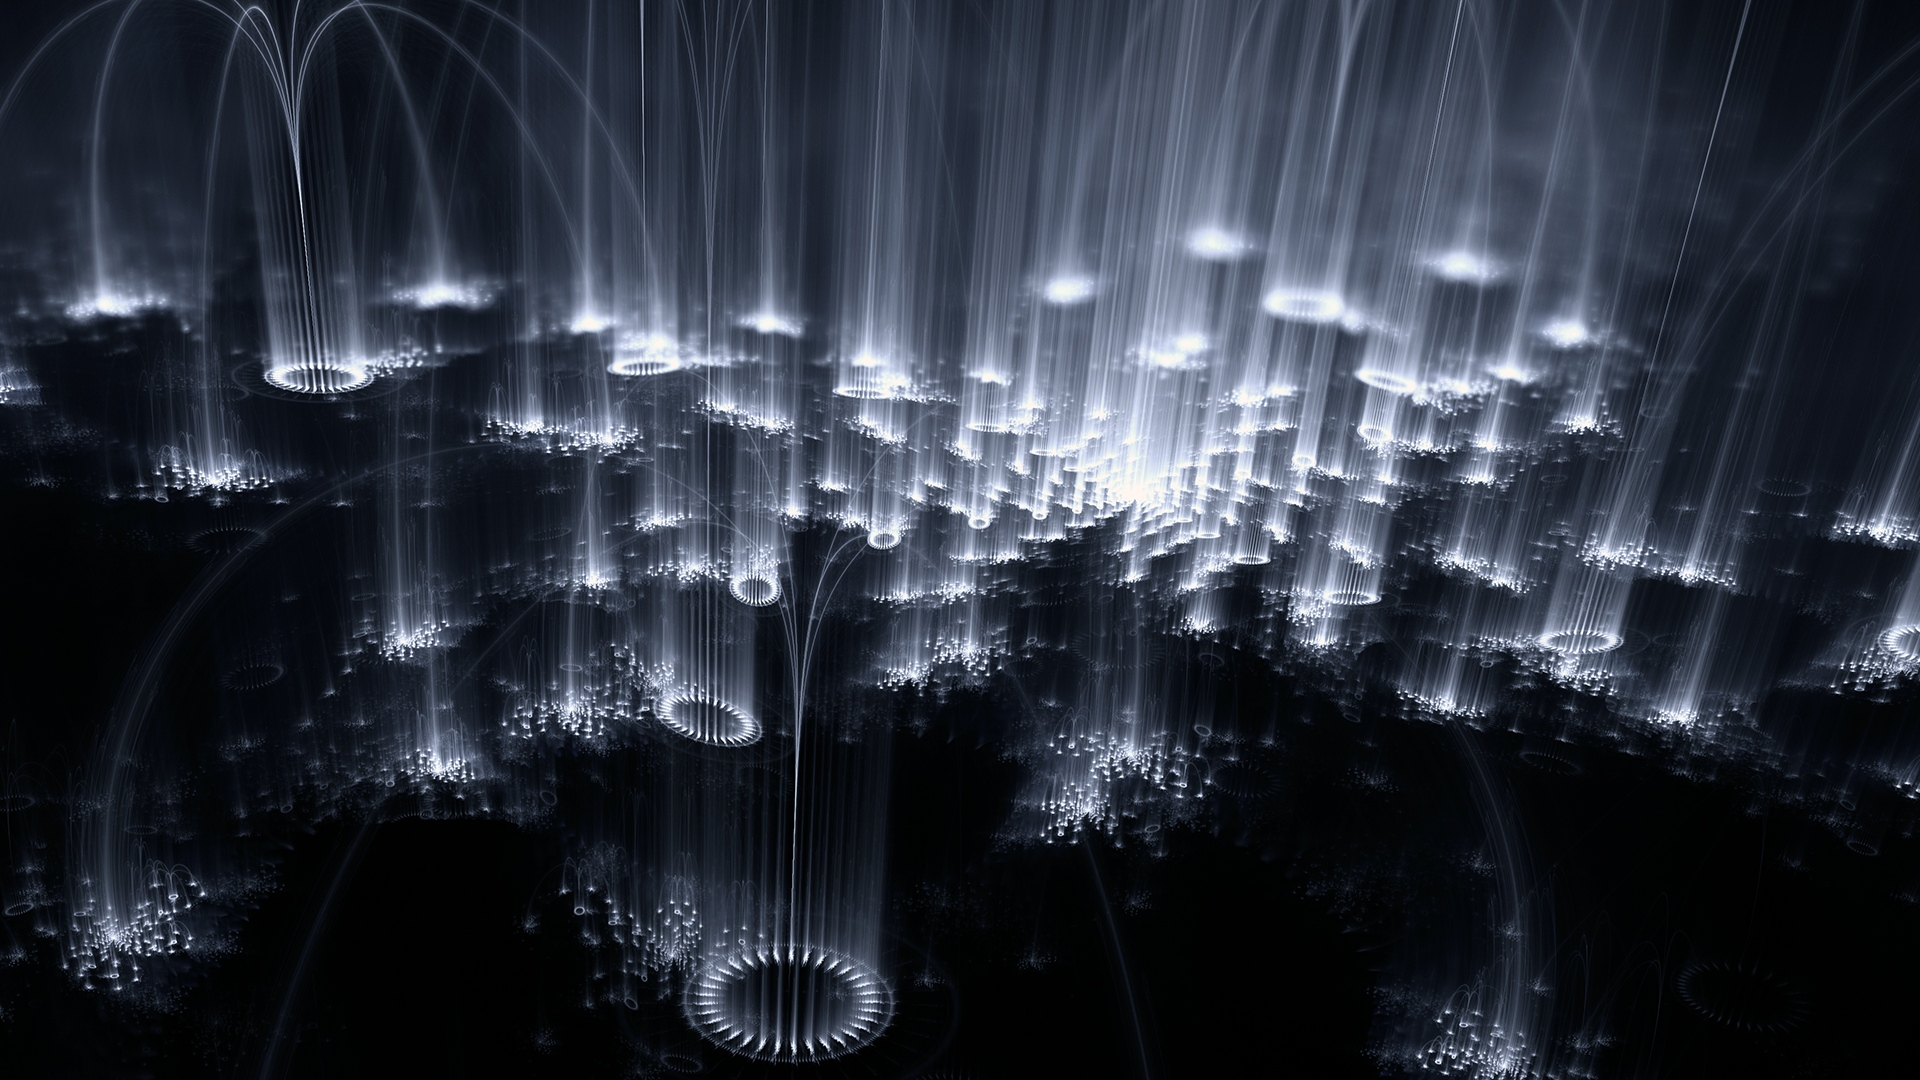 Fountain - HDR render by thargor6